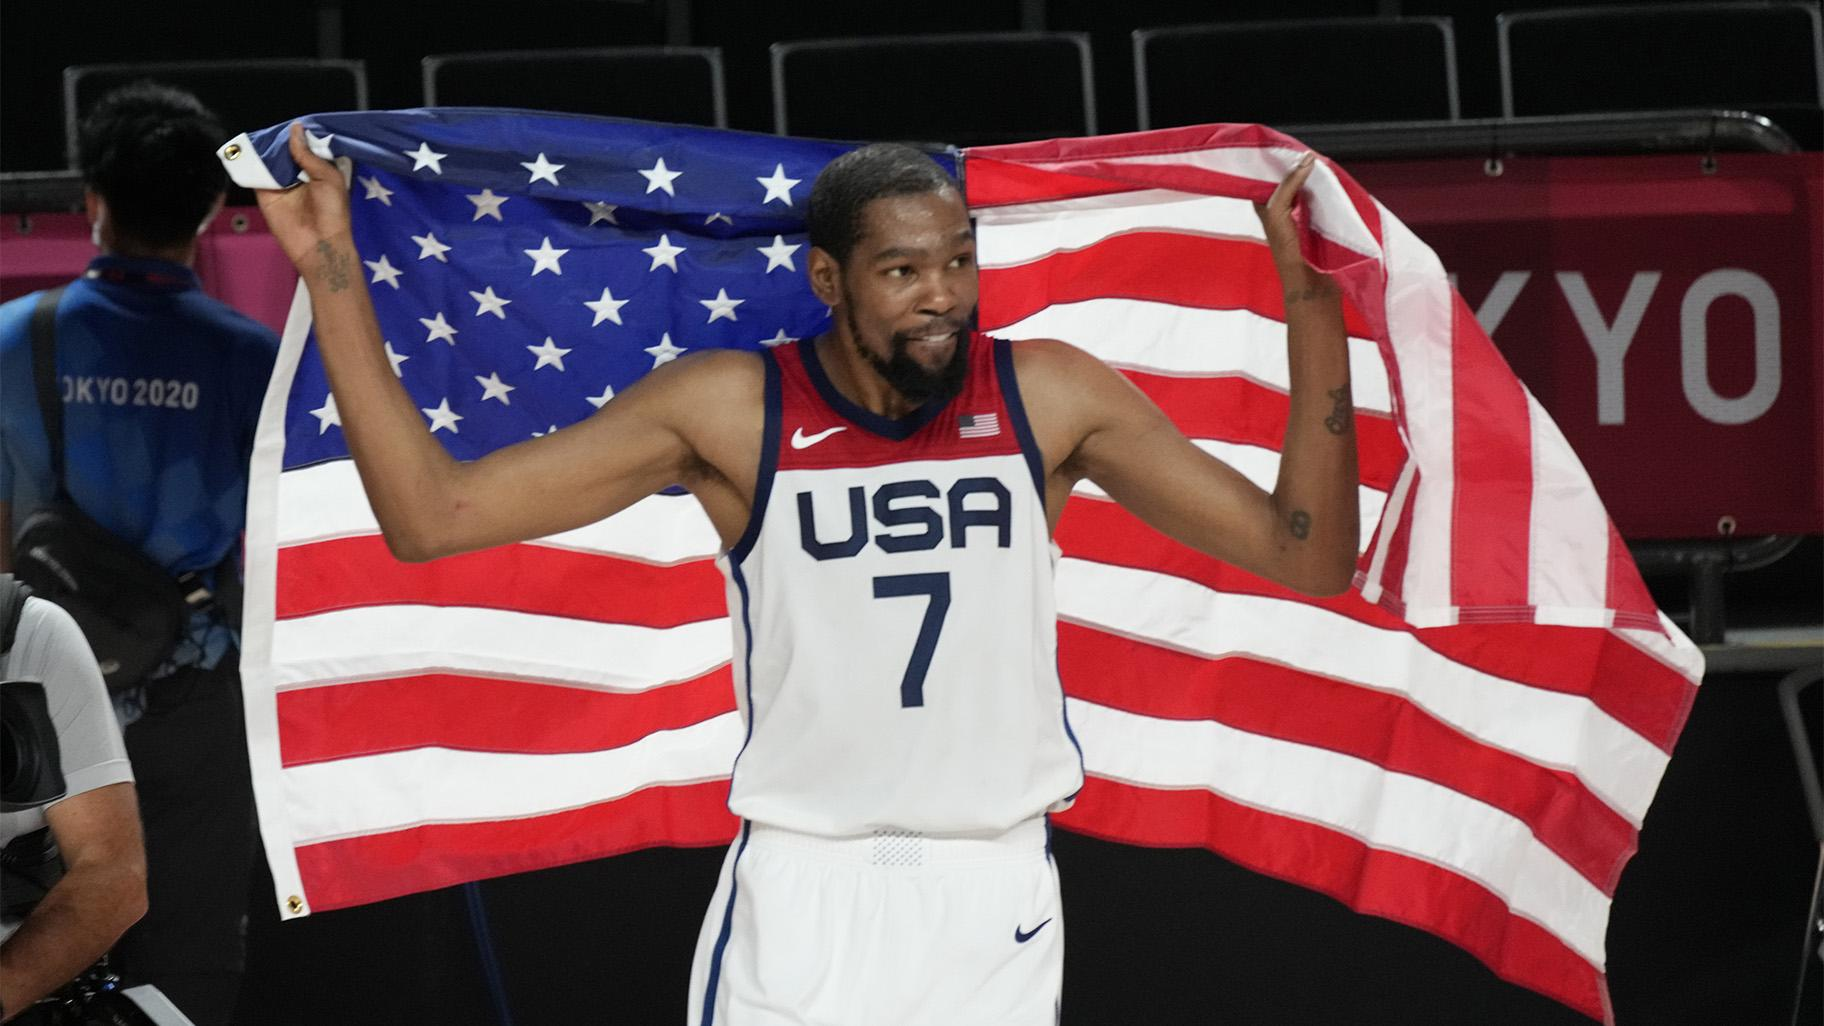 United States' Kevin Durant (7) celebrates after their win in the men's basketball gold medal game against France at the 2020 Summer Olympics, Saturday, Aug. 7, 2021, in Saitama, Japan. (AP Photo / Luca Bruno)